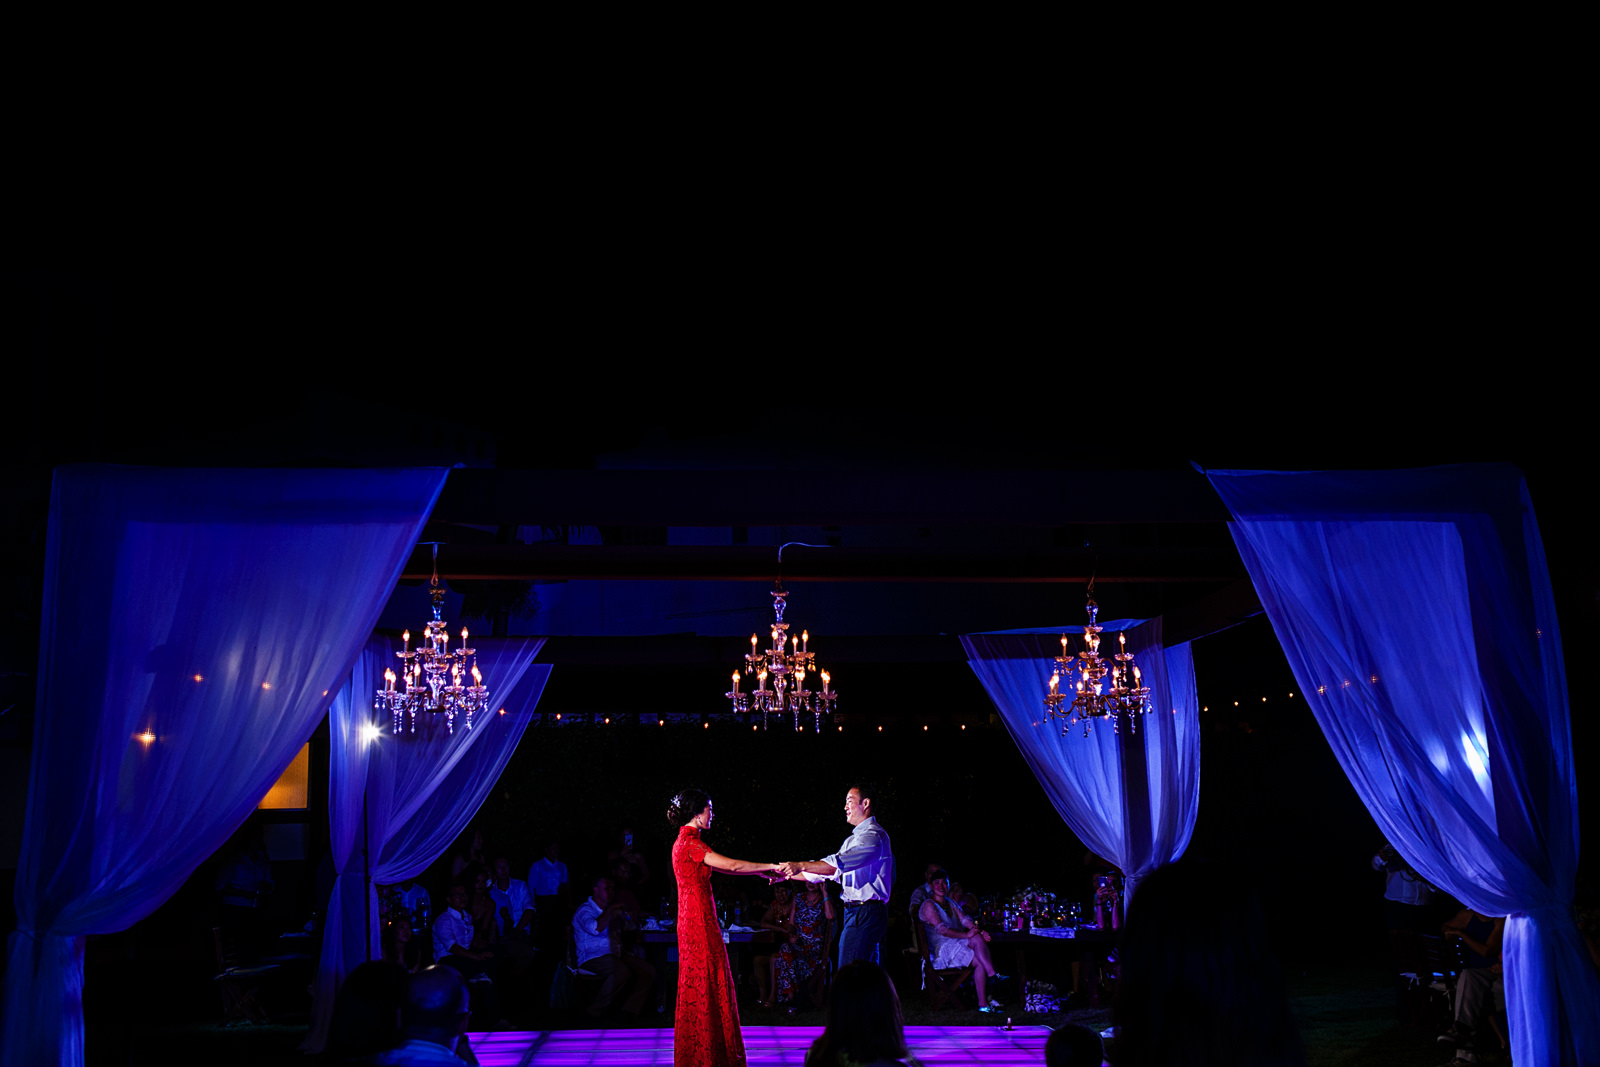 Groom and bride have their first dance as a married couple at the dance floor under a structure with chandeliers.